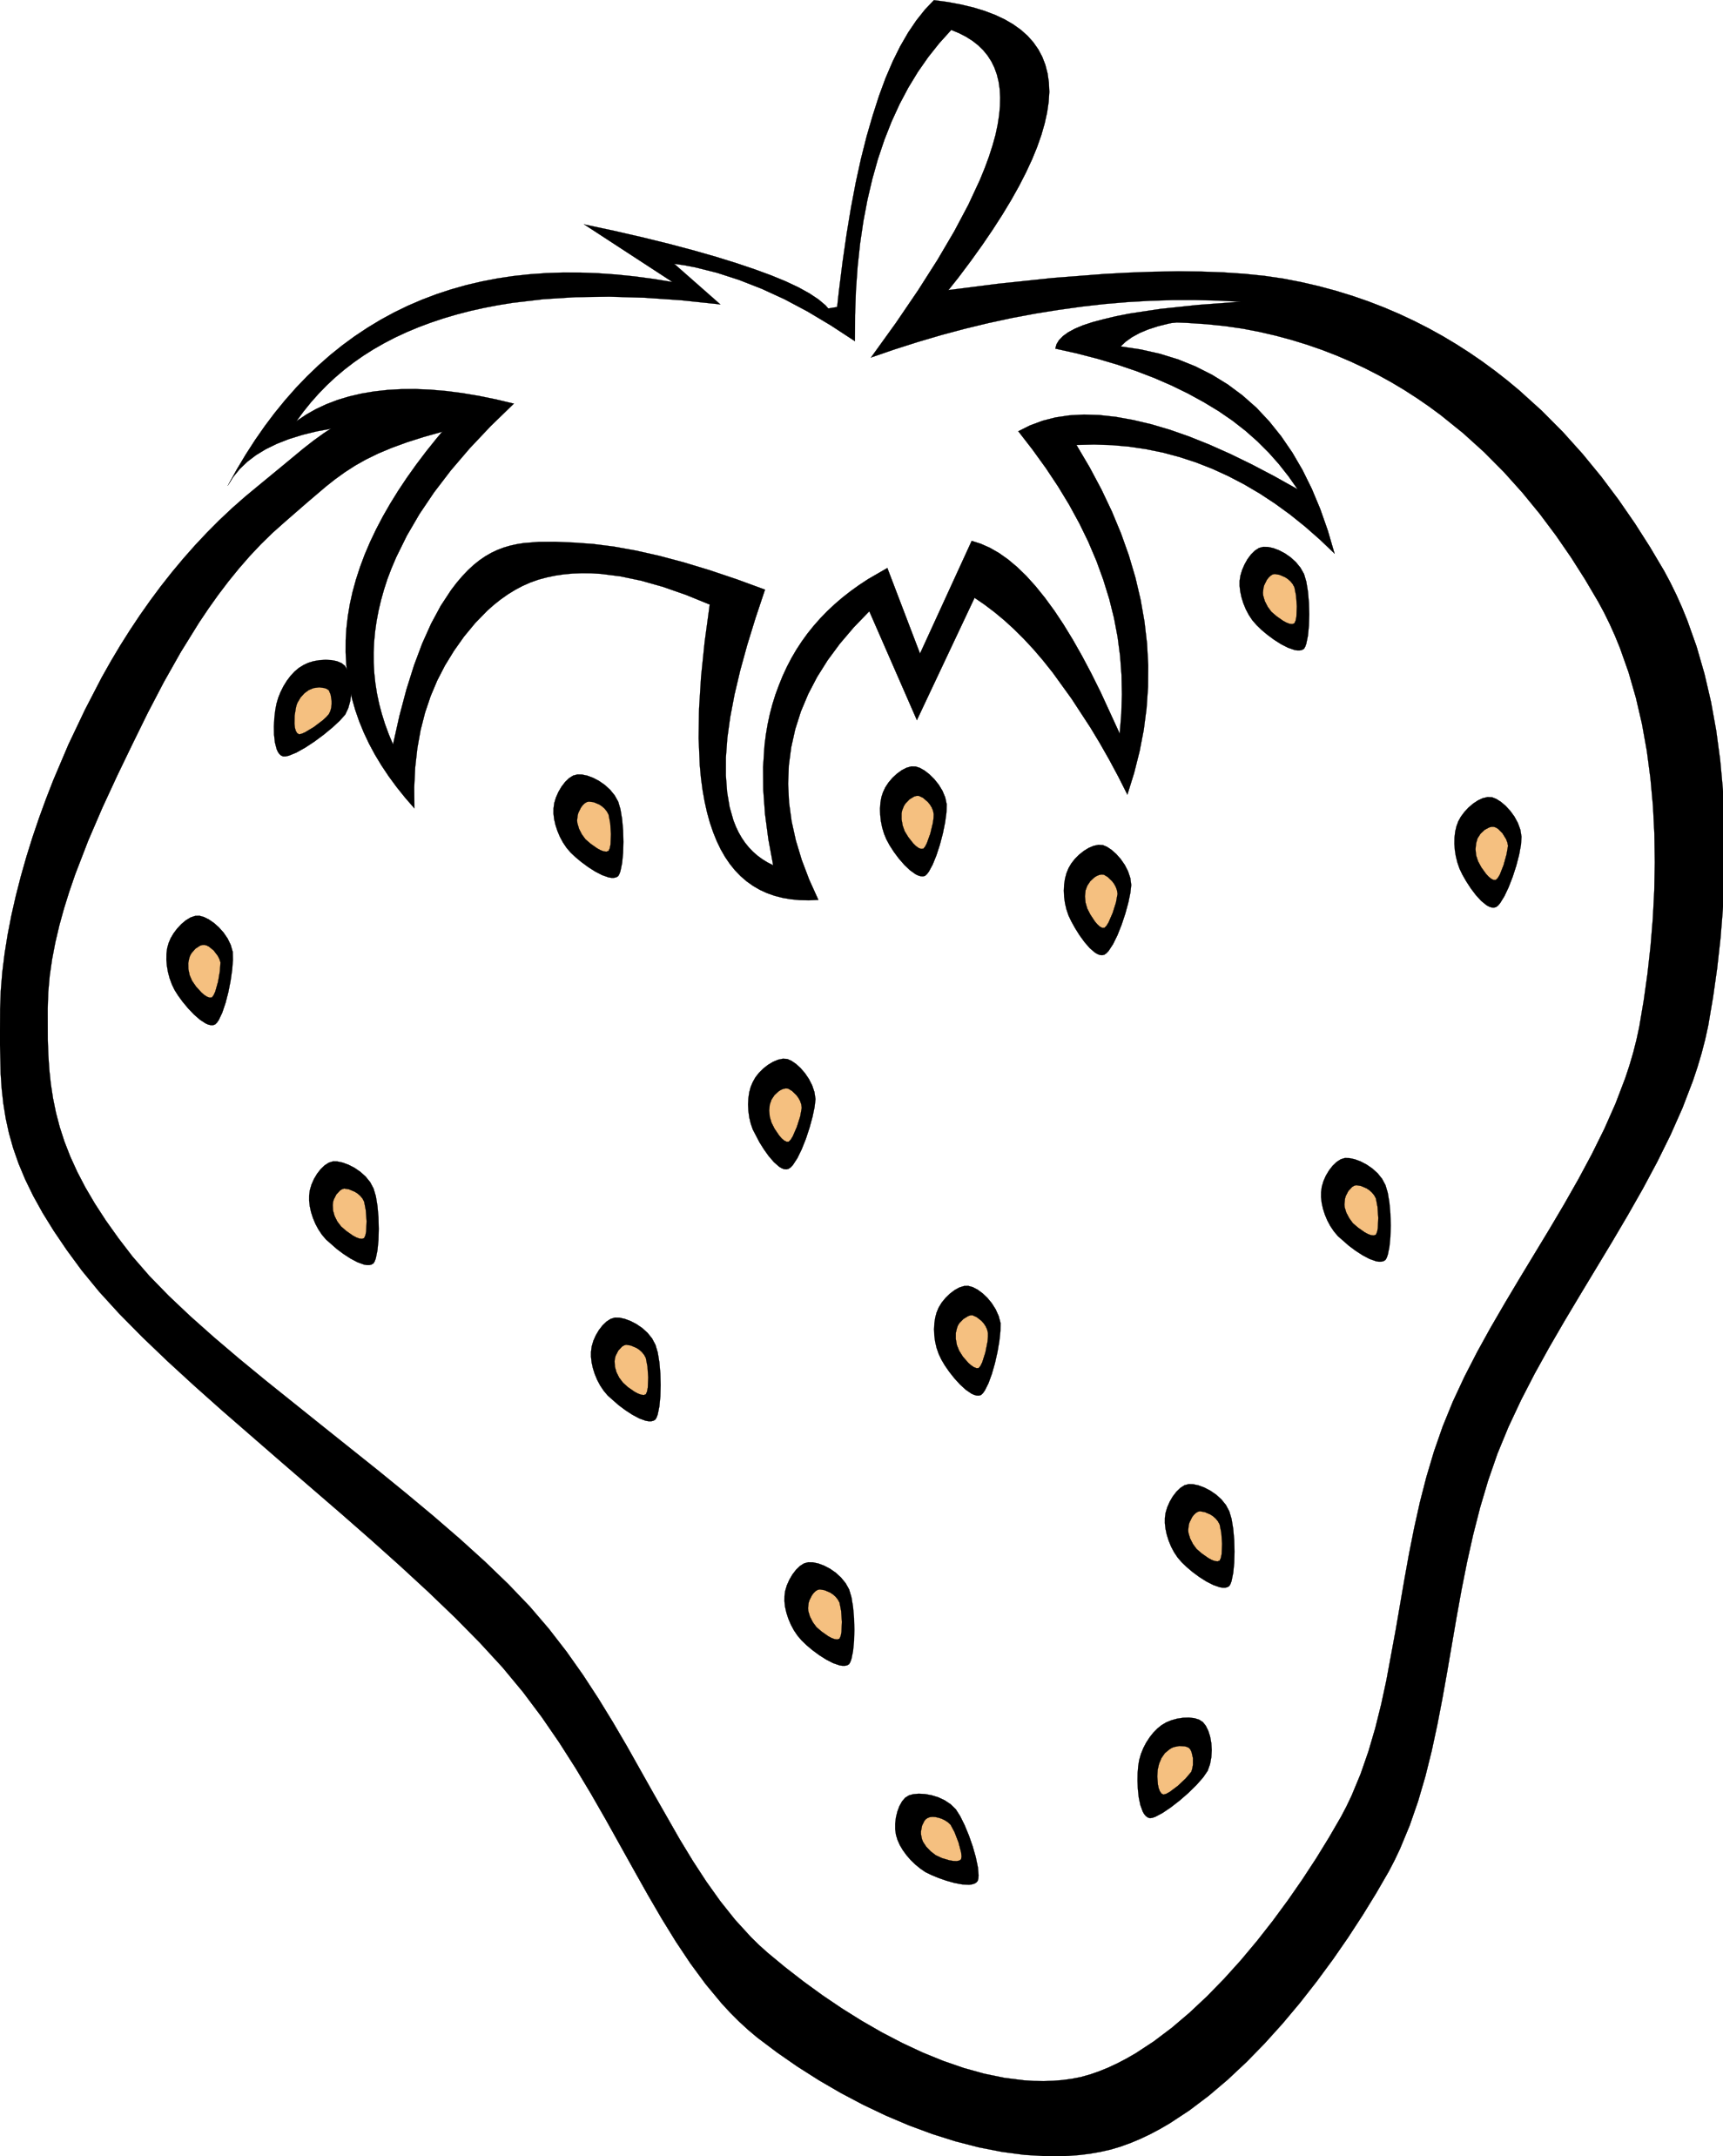 Clipart black and white clipart free library Black And White Fruit Clipart | Clipart Panda - Free Clipart Images clipart free library